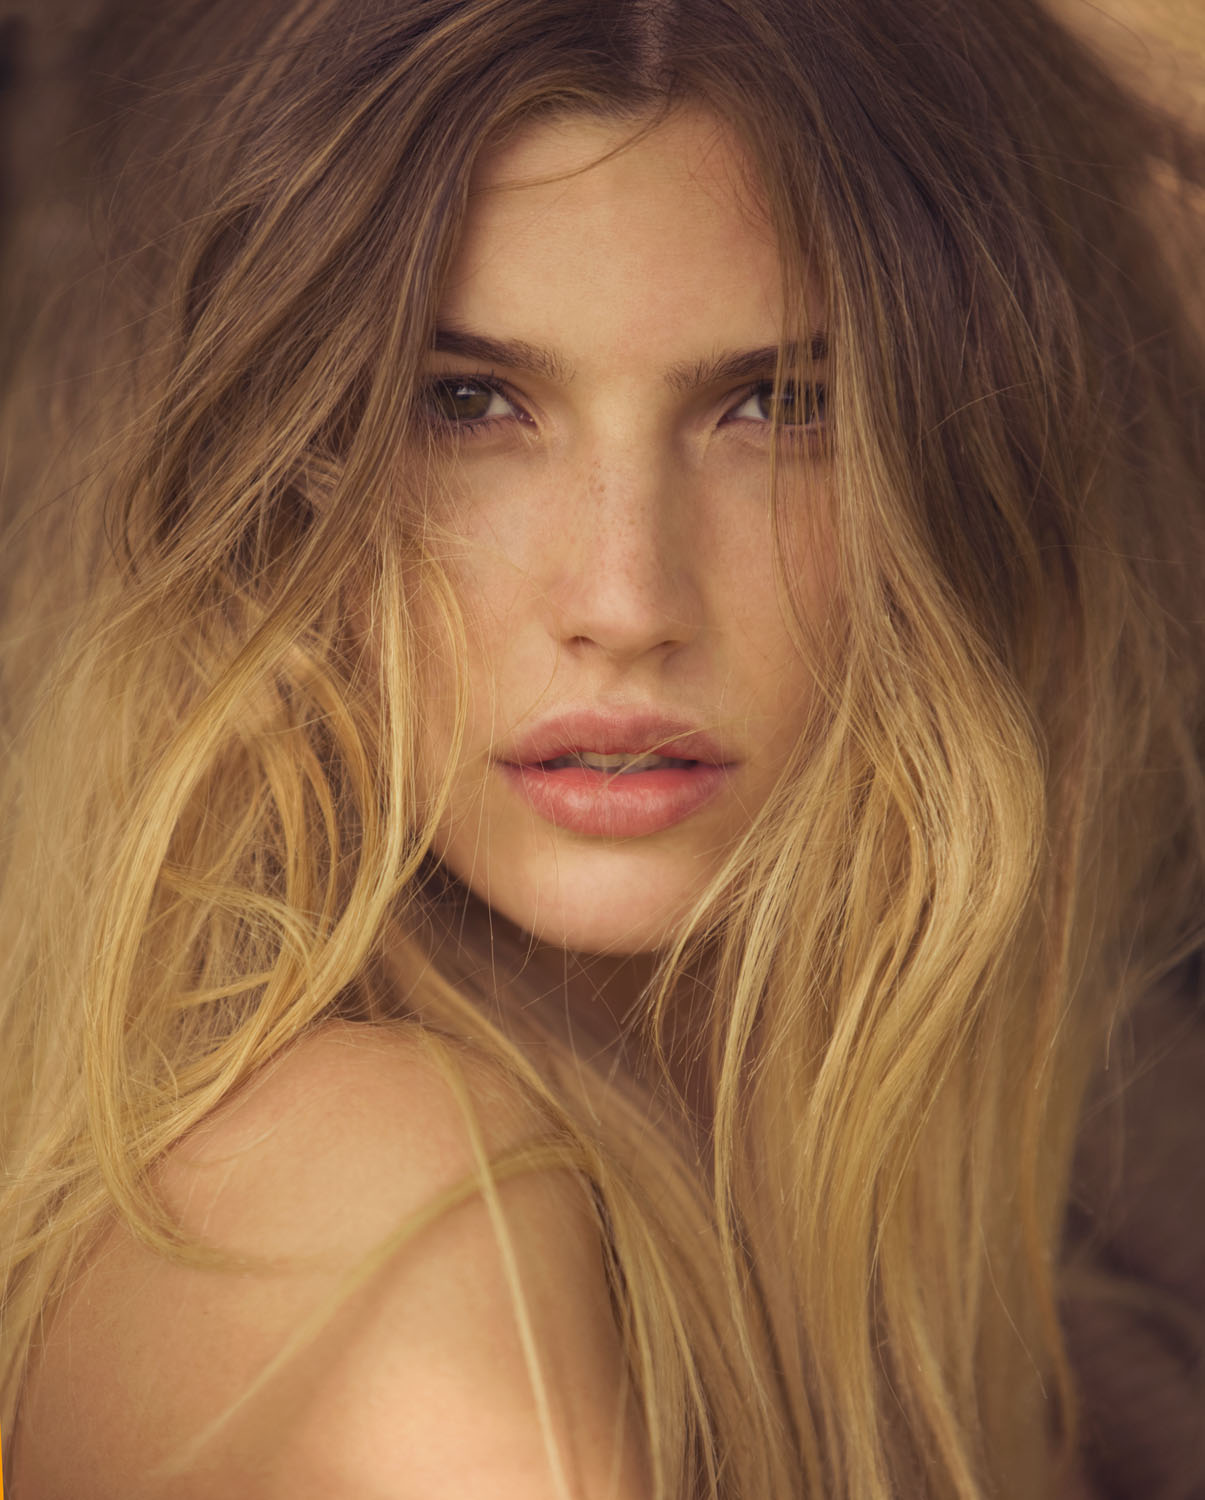 French Dressing by David Bellemere for Vogue Australia